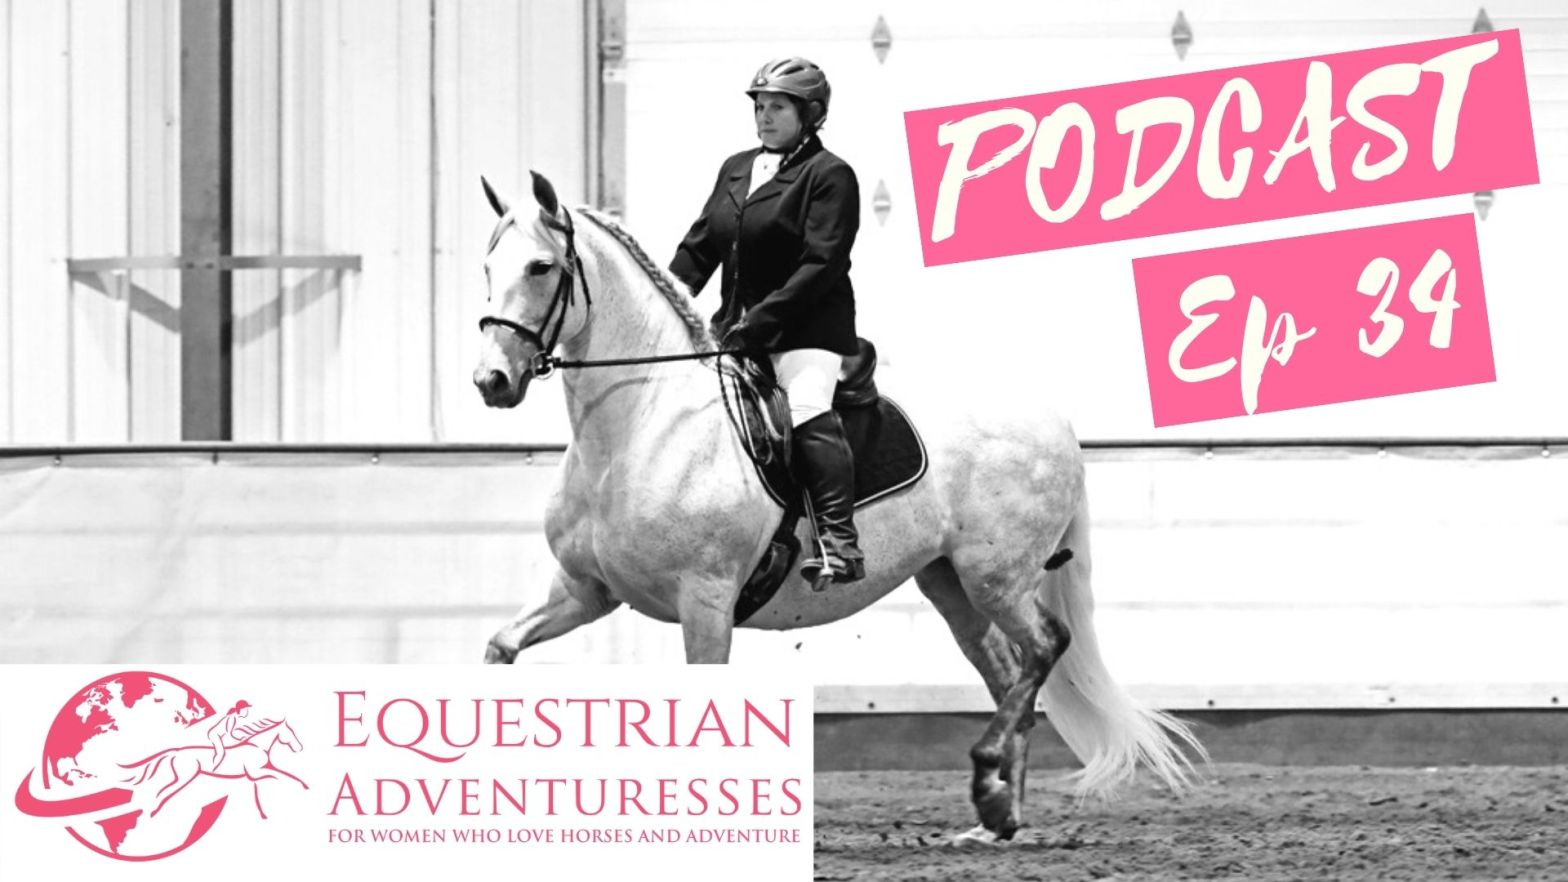 Equestrian Adventuresses Travel and Horse Podcast Ep 34 - Andalusian Horse Breeder, Trainer and Even a Farrier Colleen Aitken